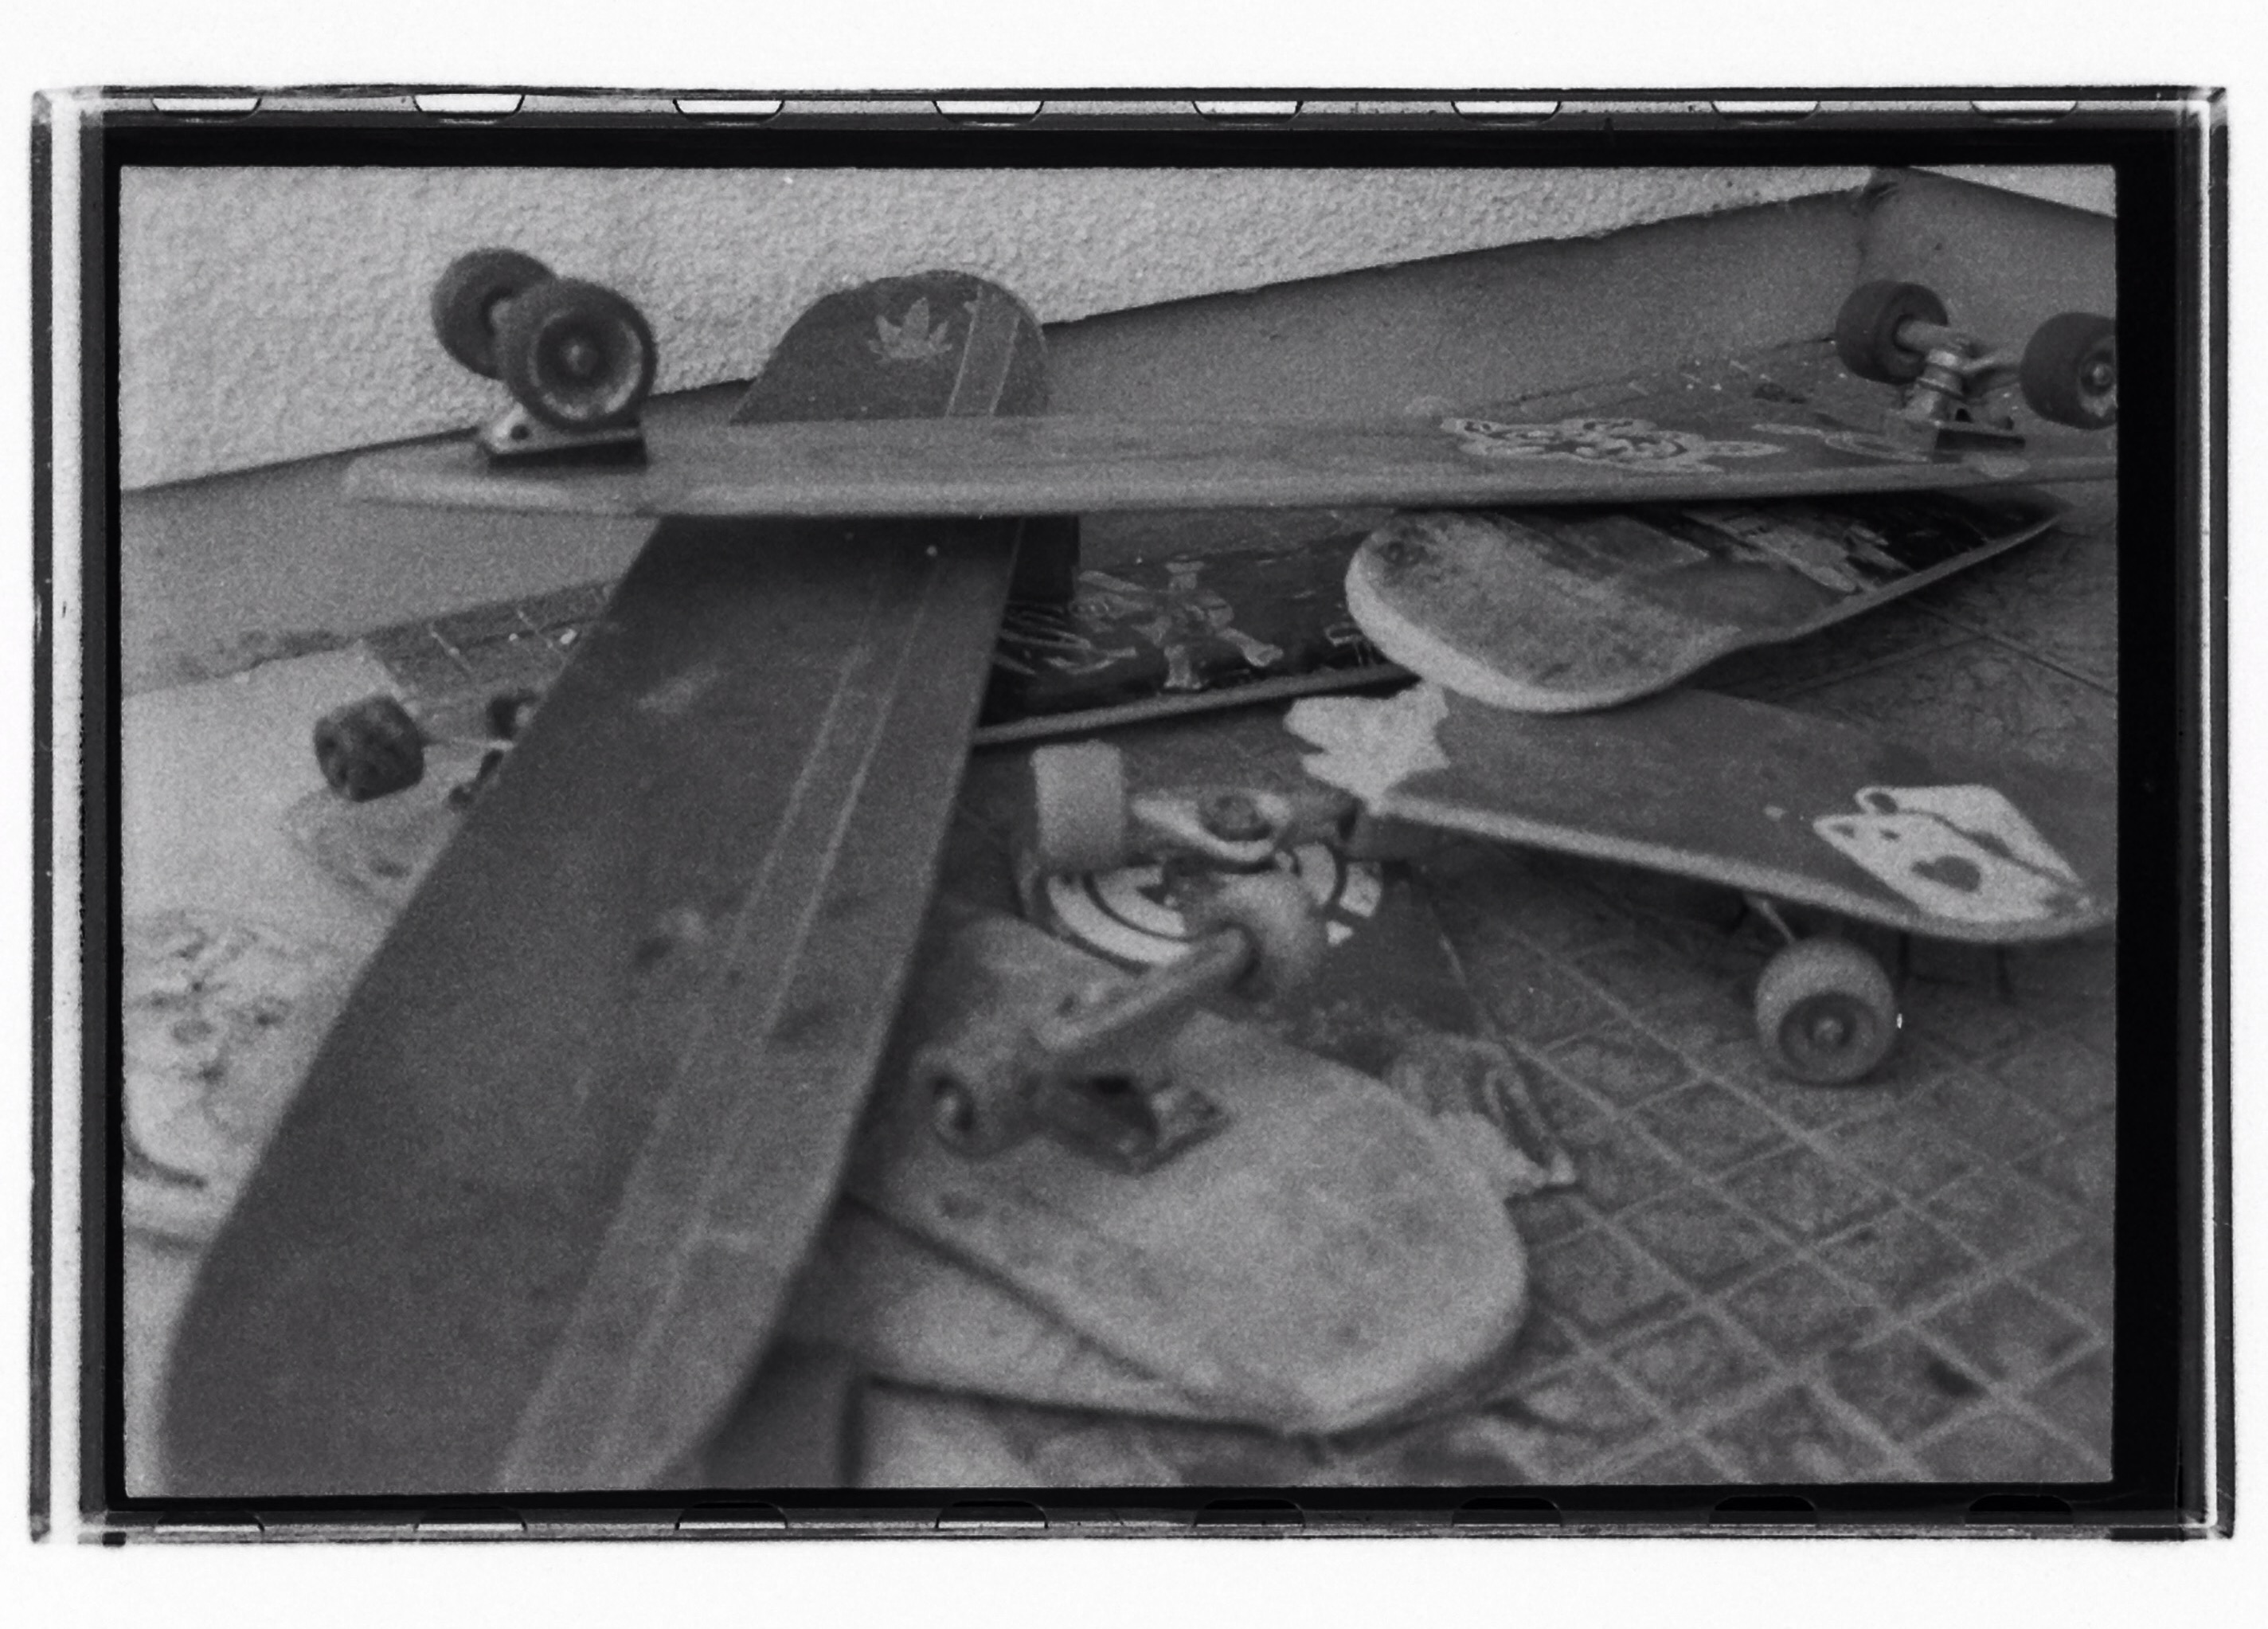 broken skateboards 35mm phone scan. College documentary photography project. Self processed 35mm.